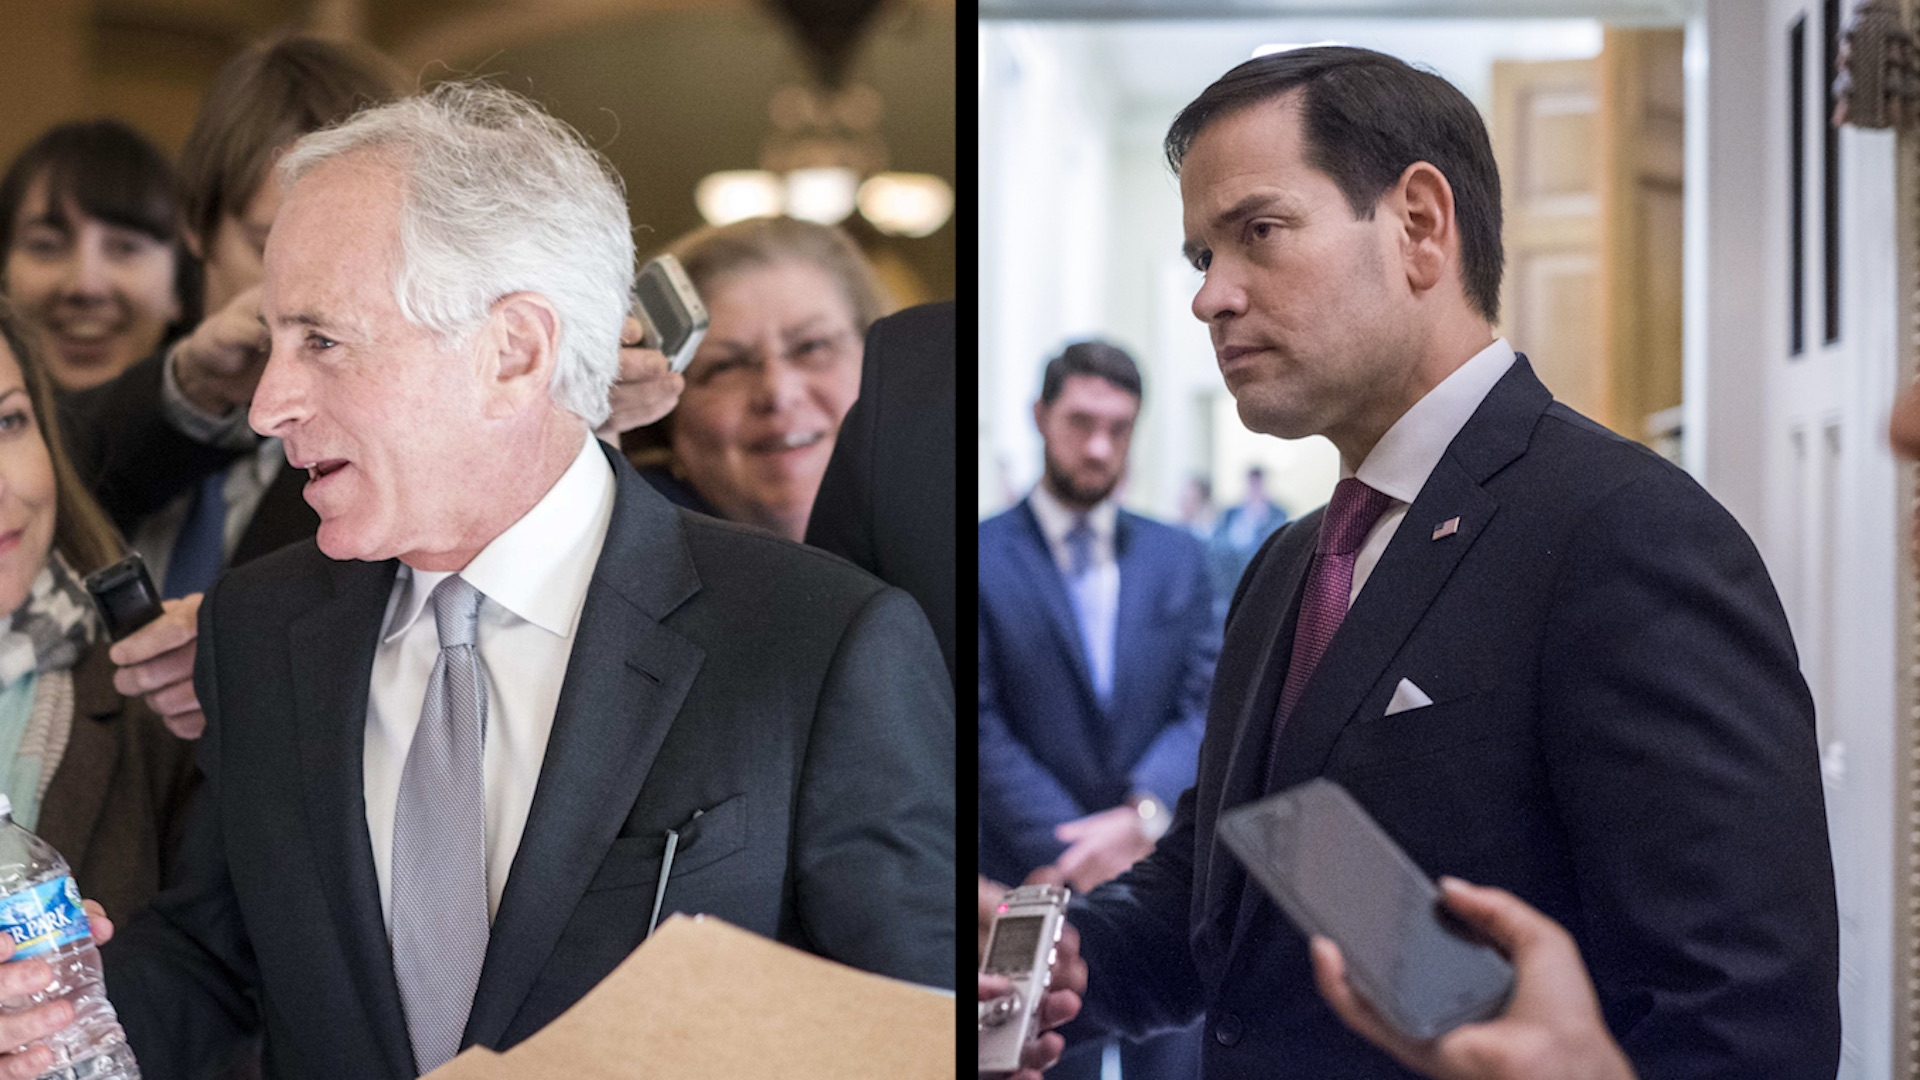 Republicans have votes to pass tax plan after Rubio, Corker pledge support